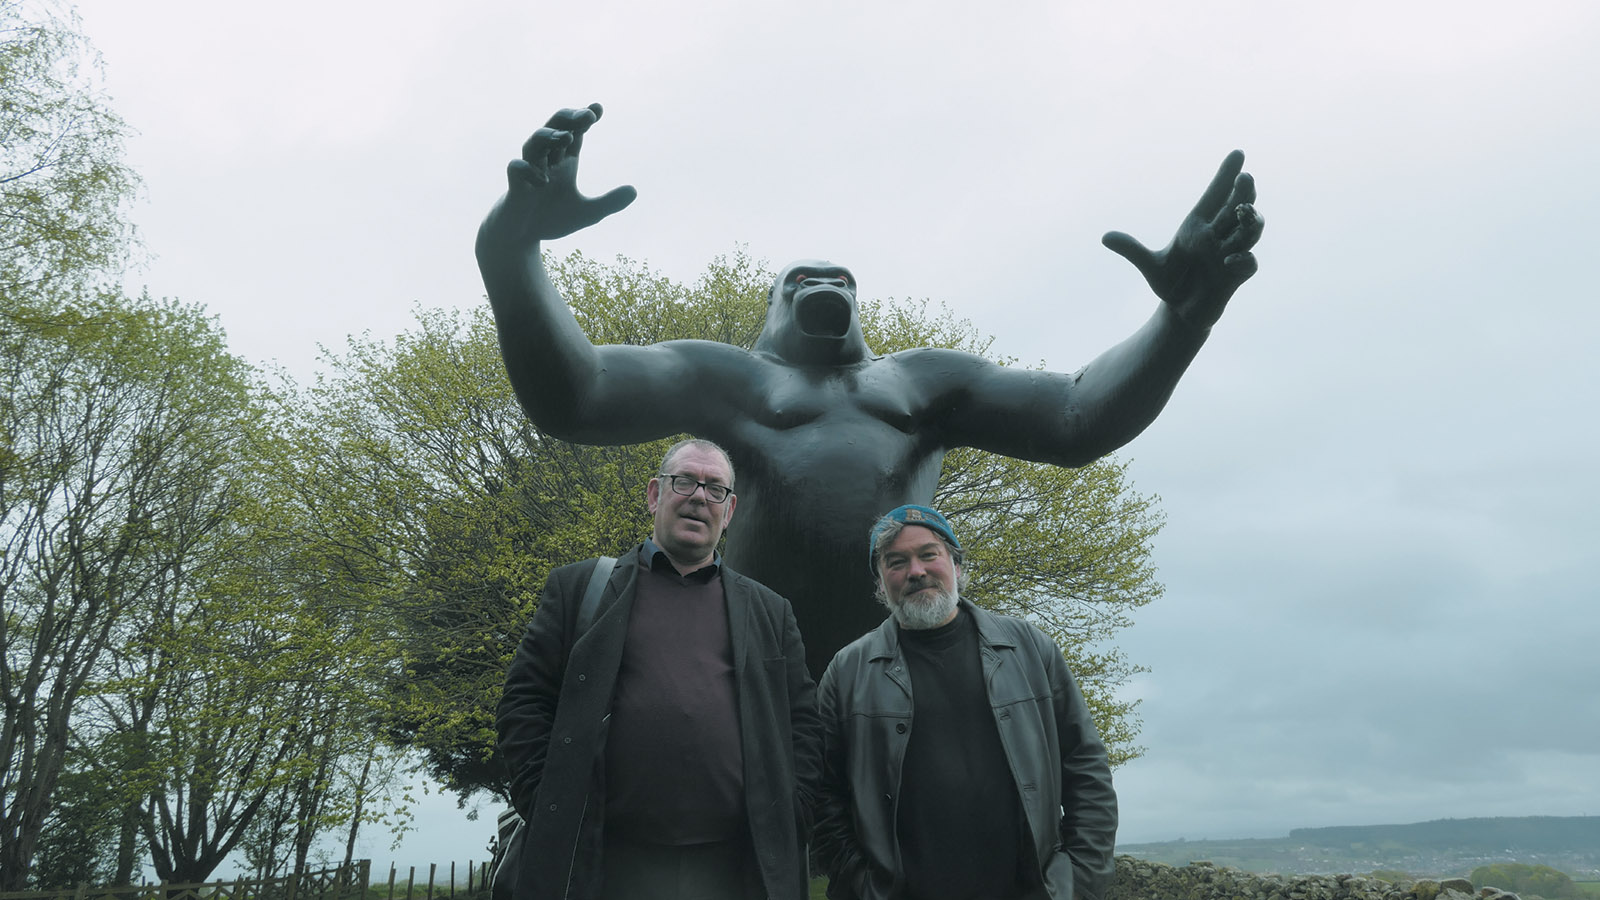 Robert Lloyd and Stewart Lee in front of Nicholas Monro's sculpture of King Kong, Cumbria, England